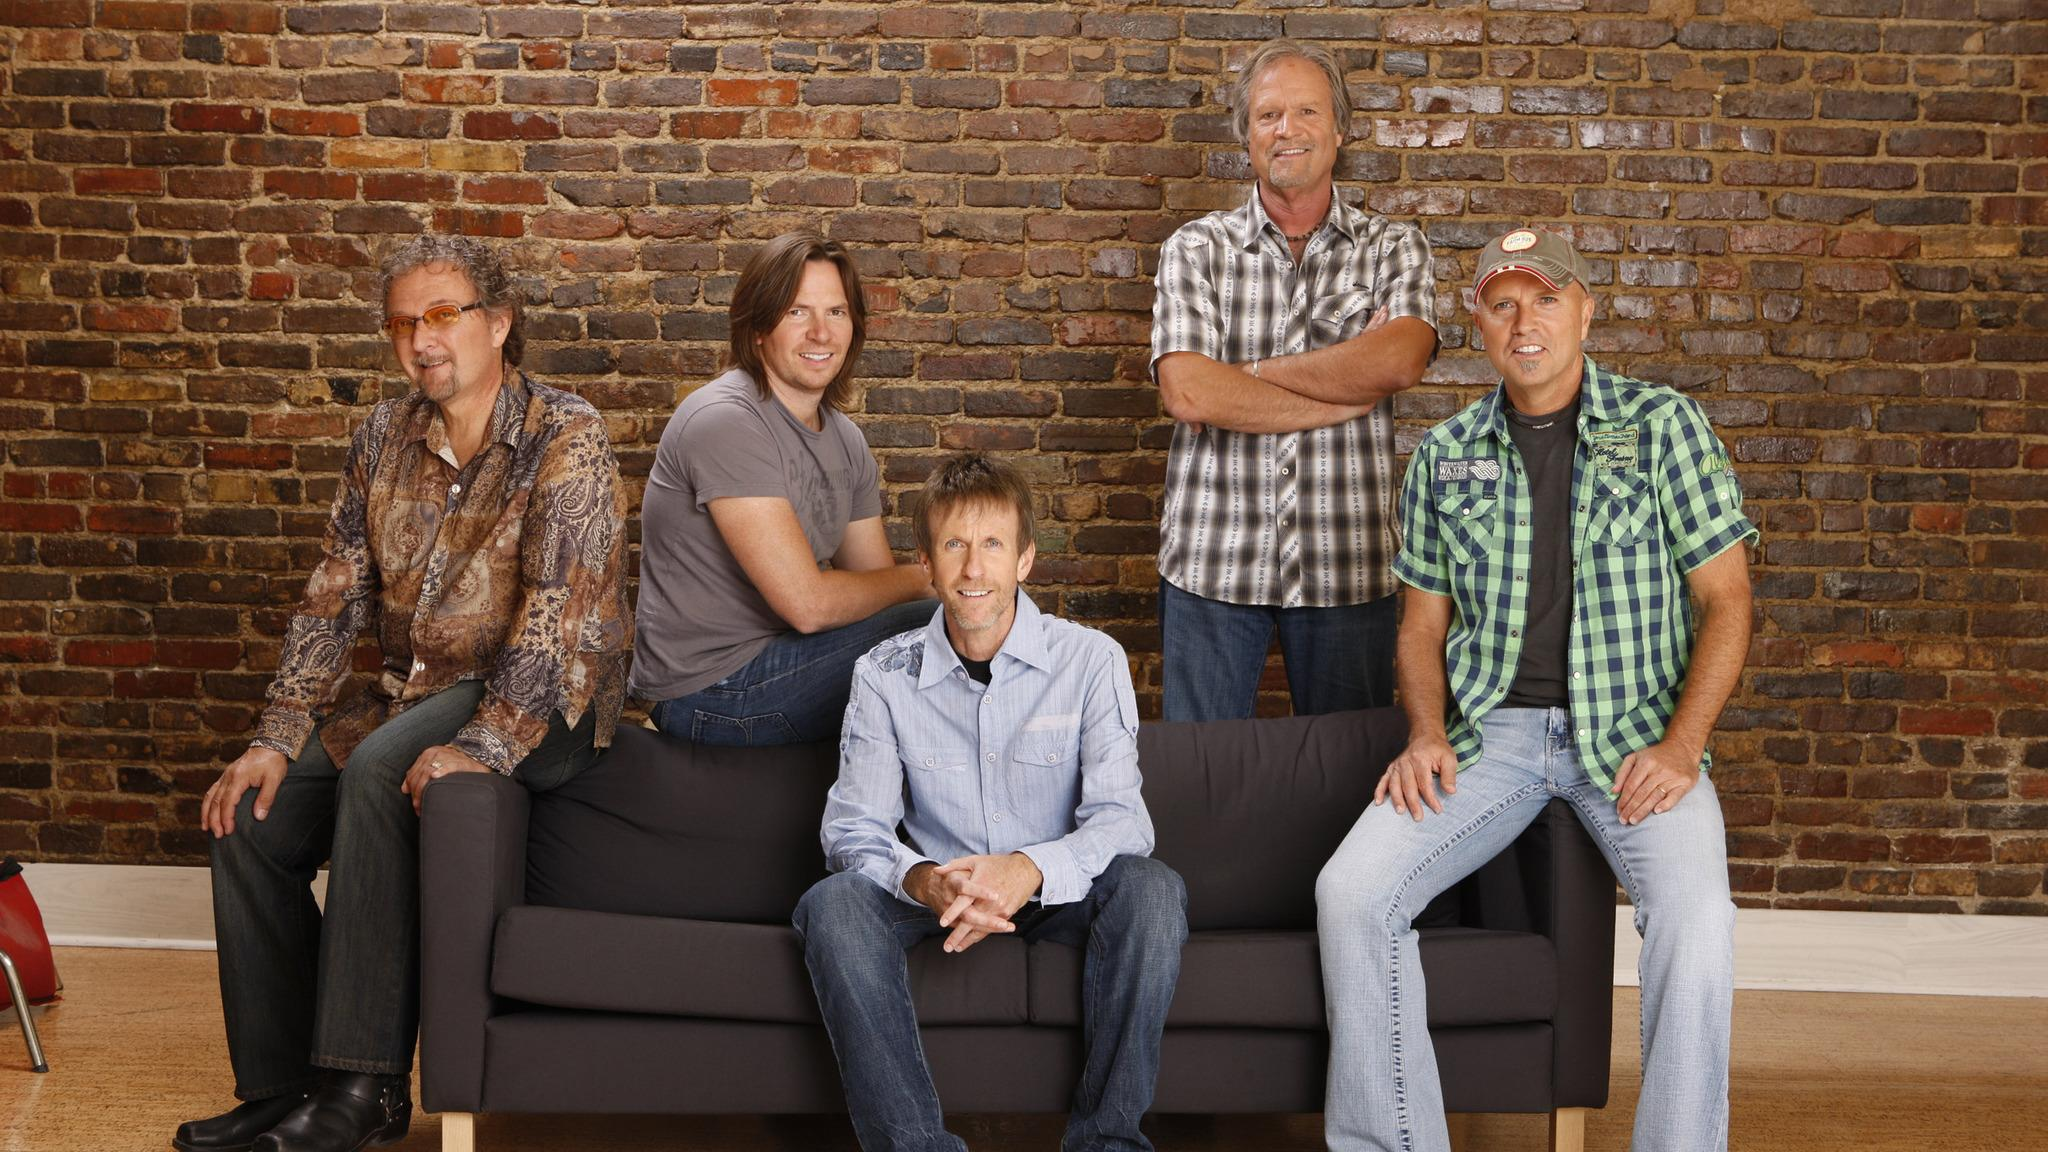 Sawyer Brown at Fitz Casino Tunica